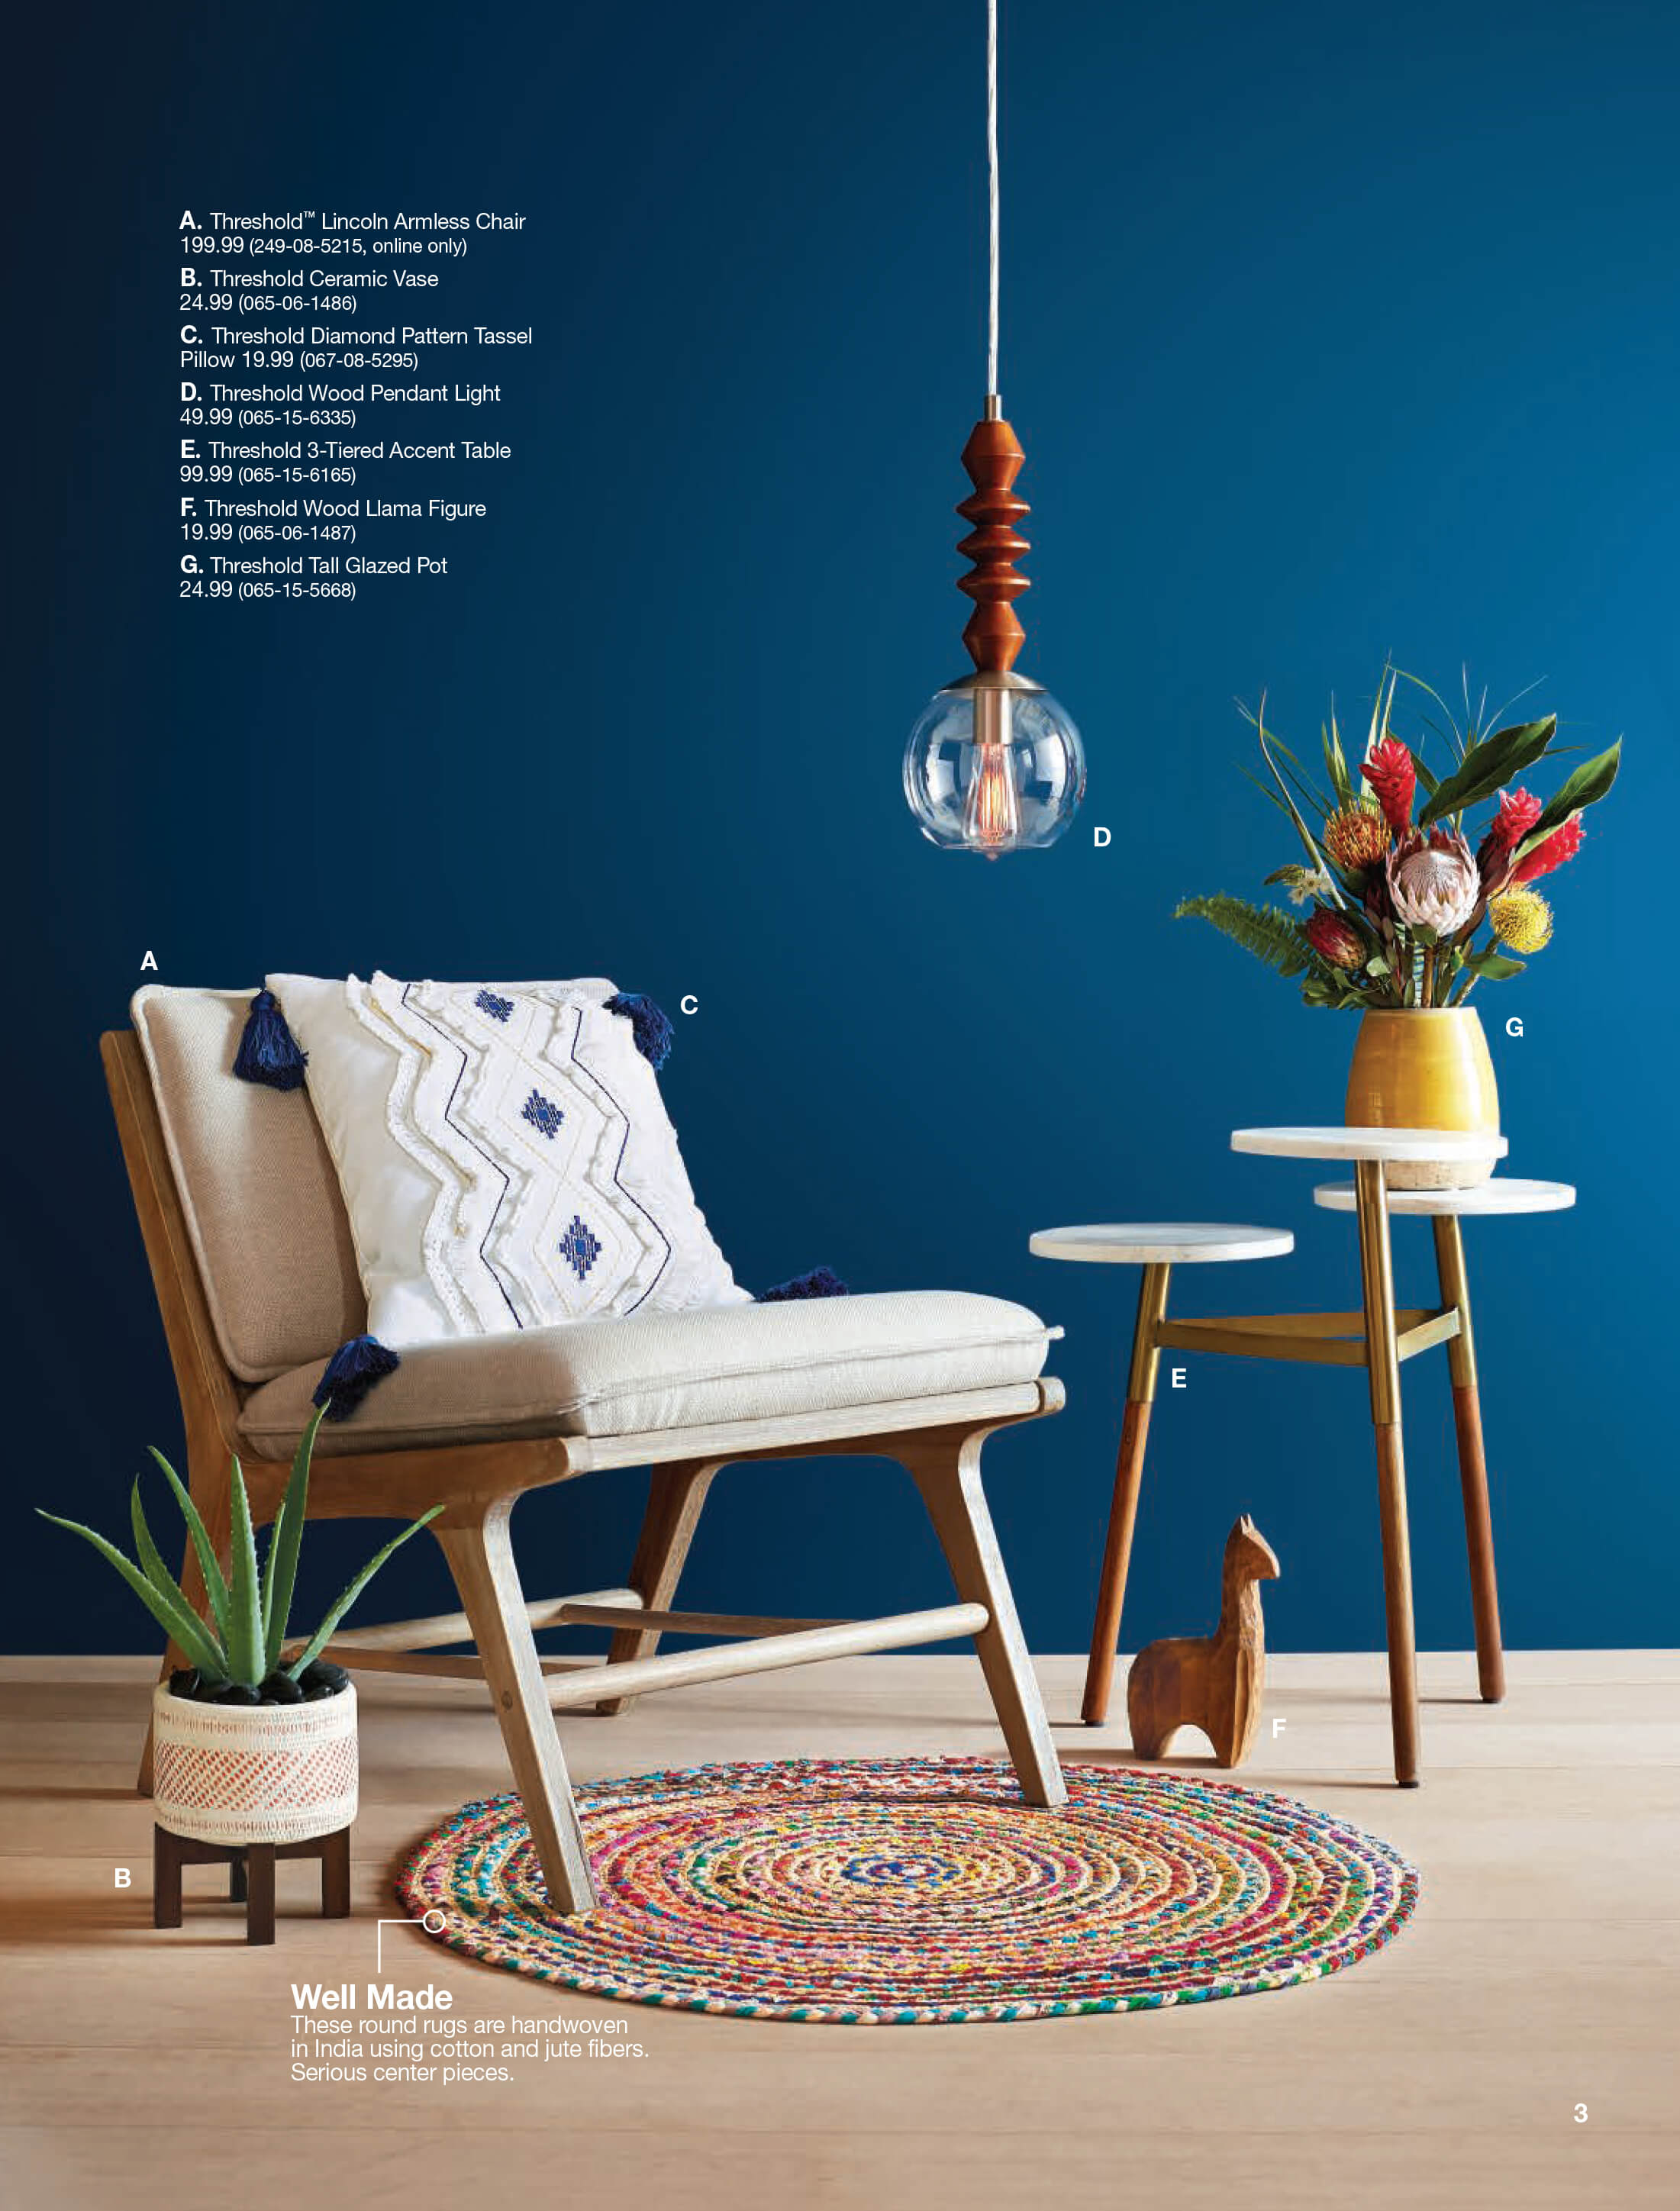 new target home product and emily henderson first look spring catalog threshold accent table gold outdoor dining sets round tablecloth furniture covers contemporary side blue